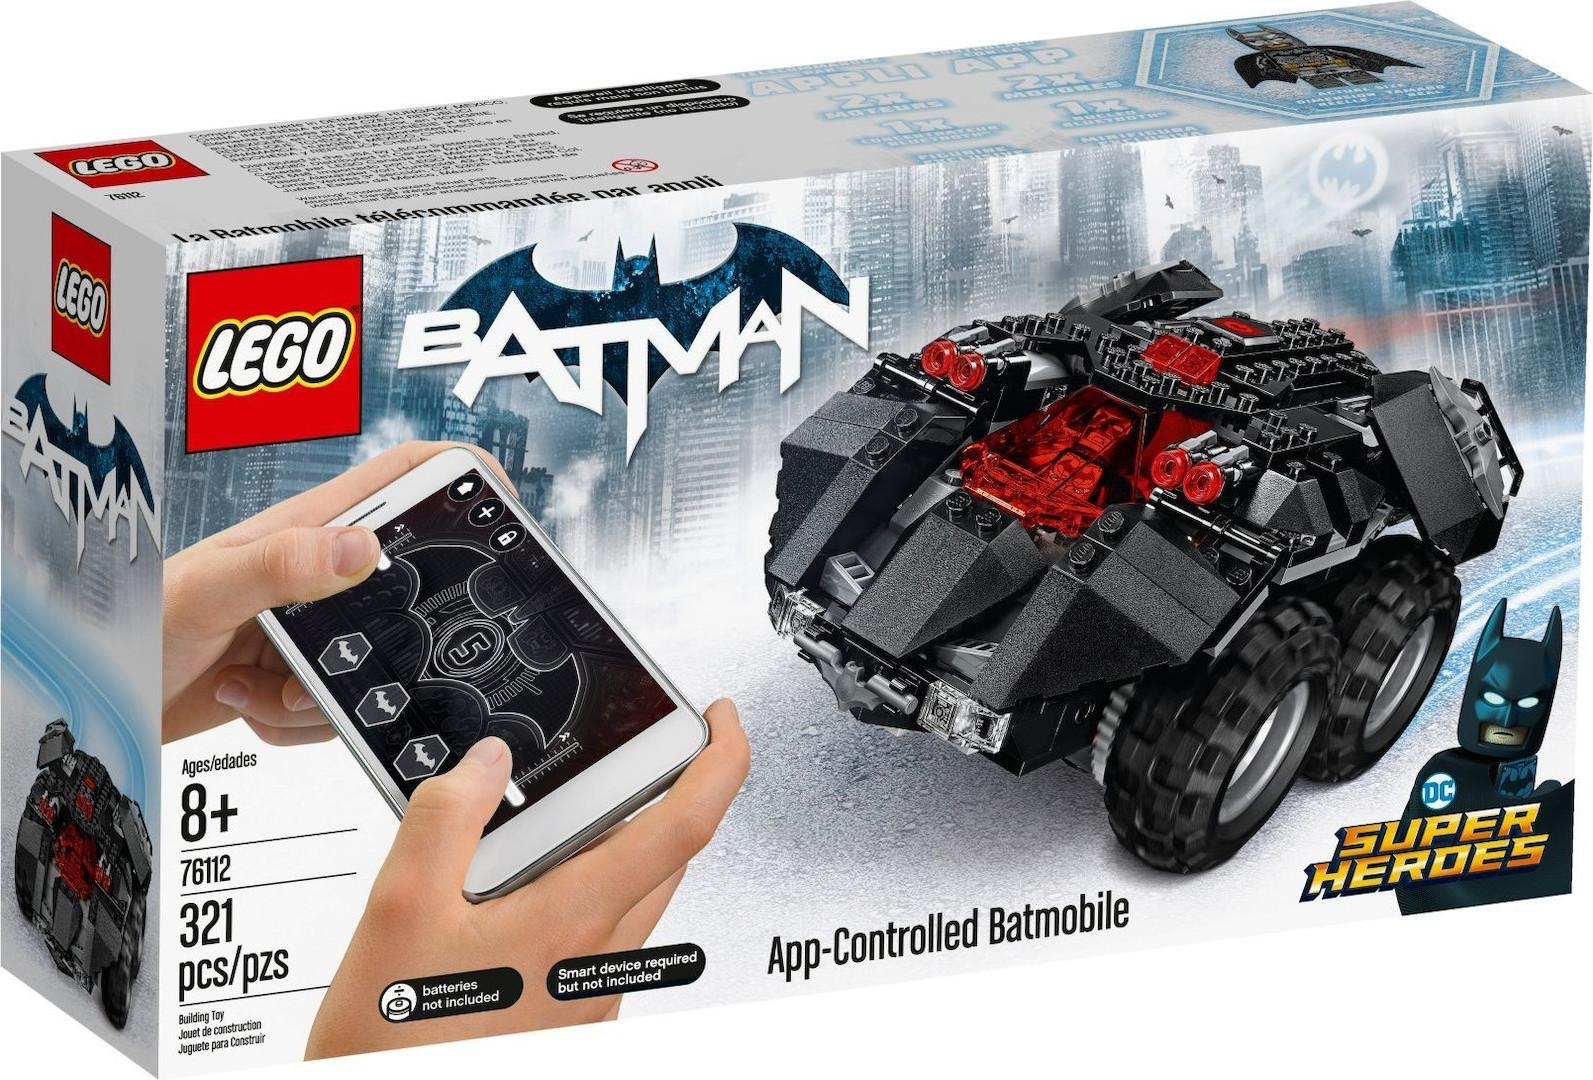 Lego Super Heroes App-Controlled Batmobile (76112)